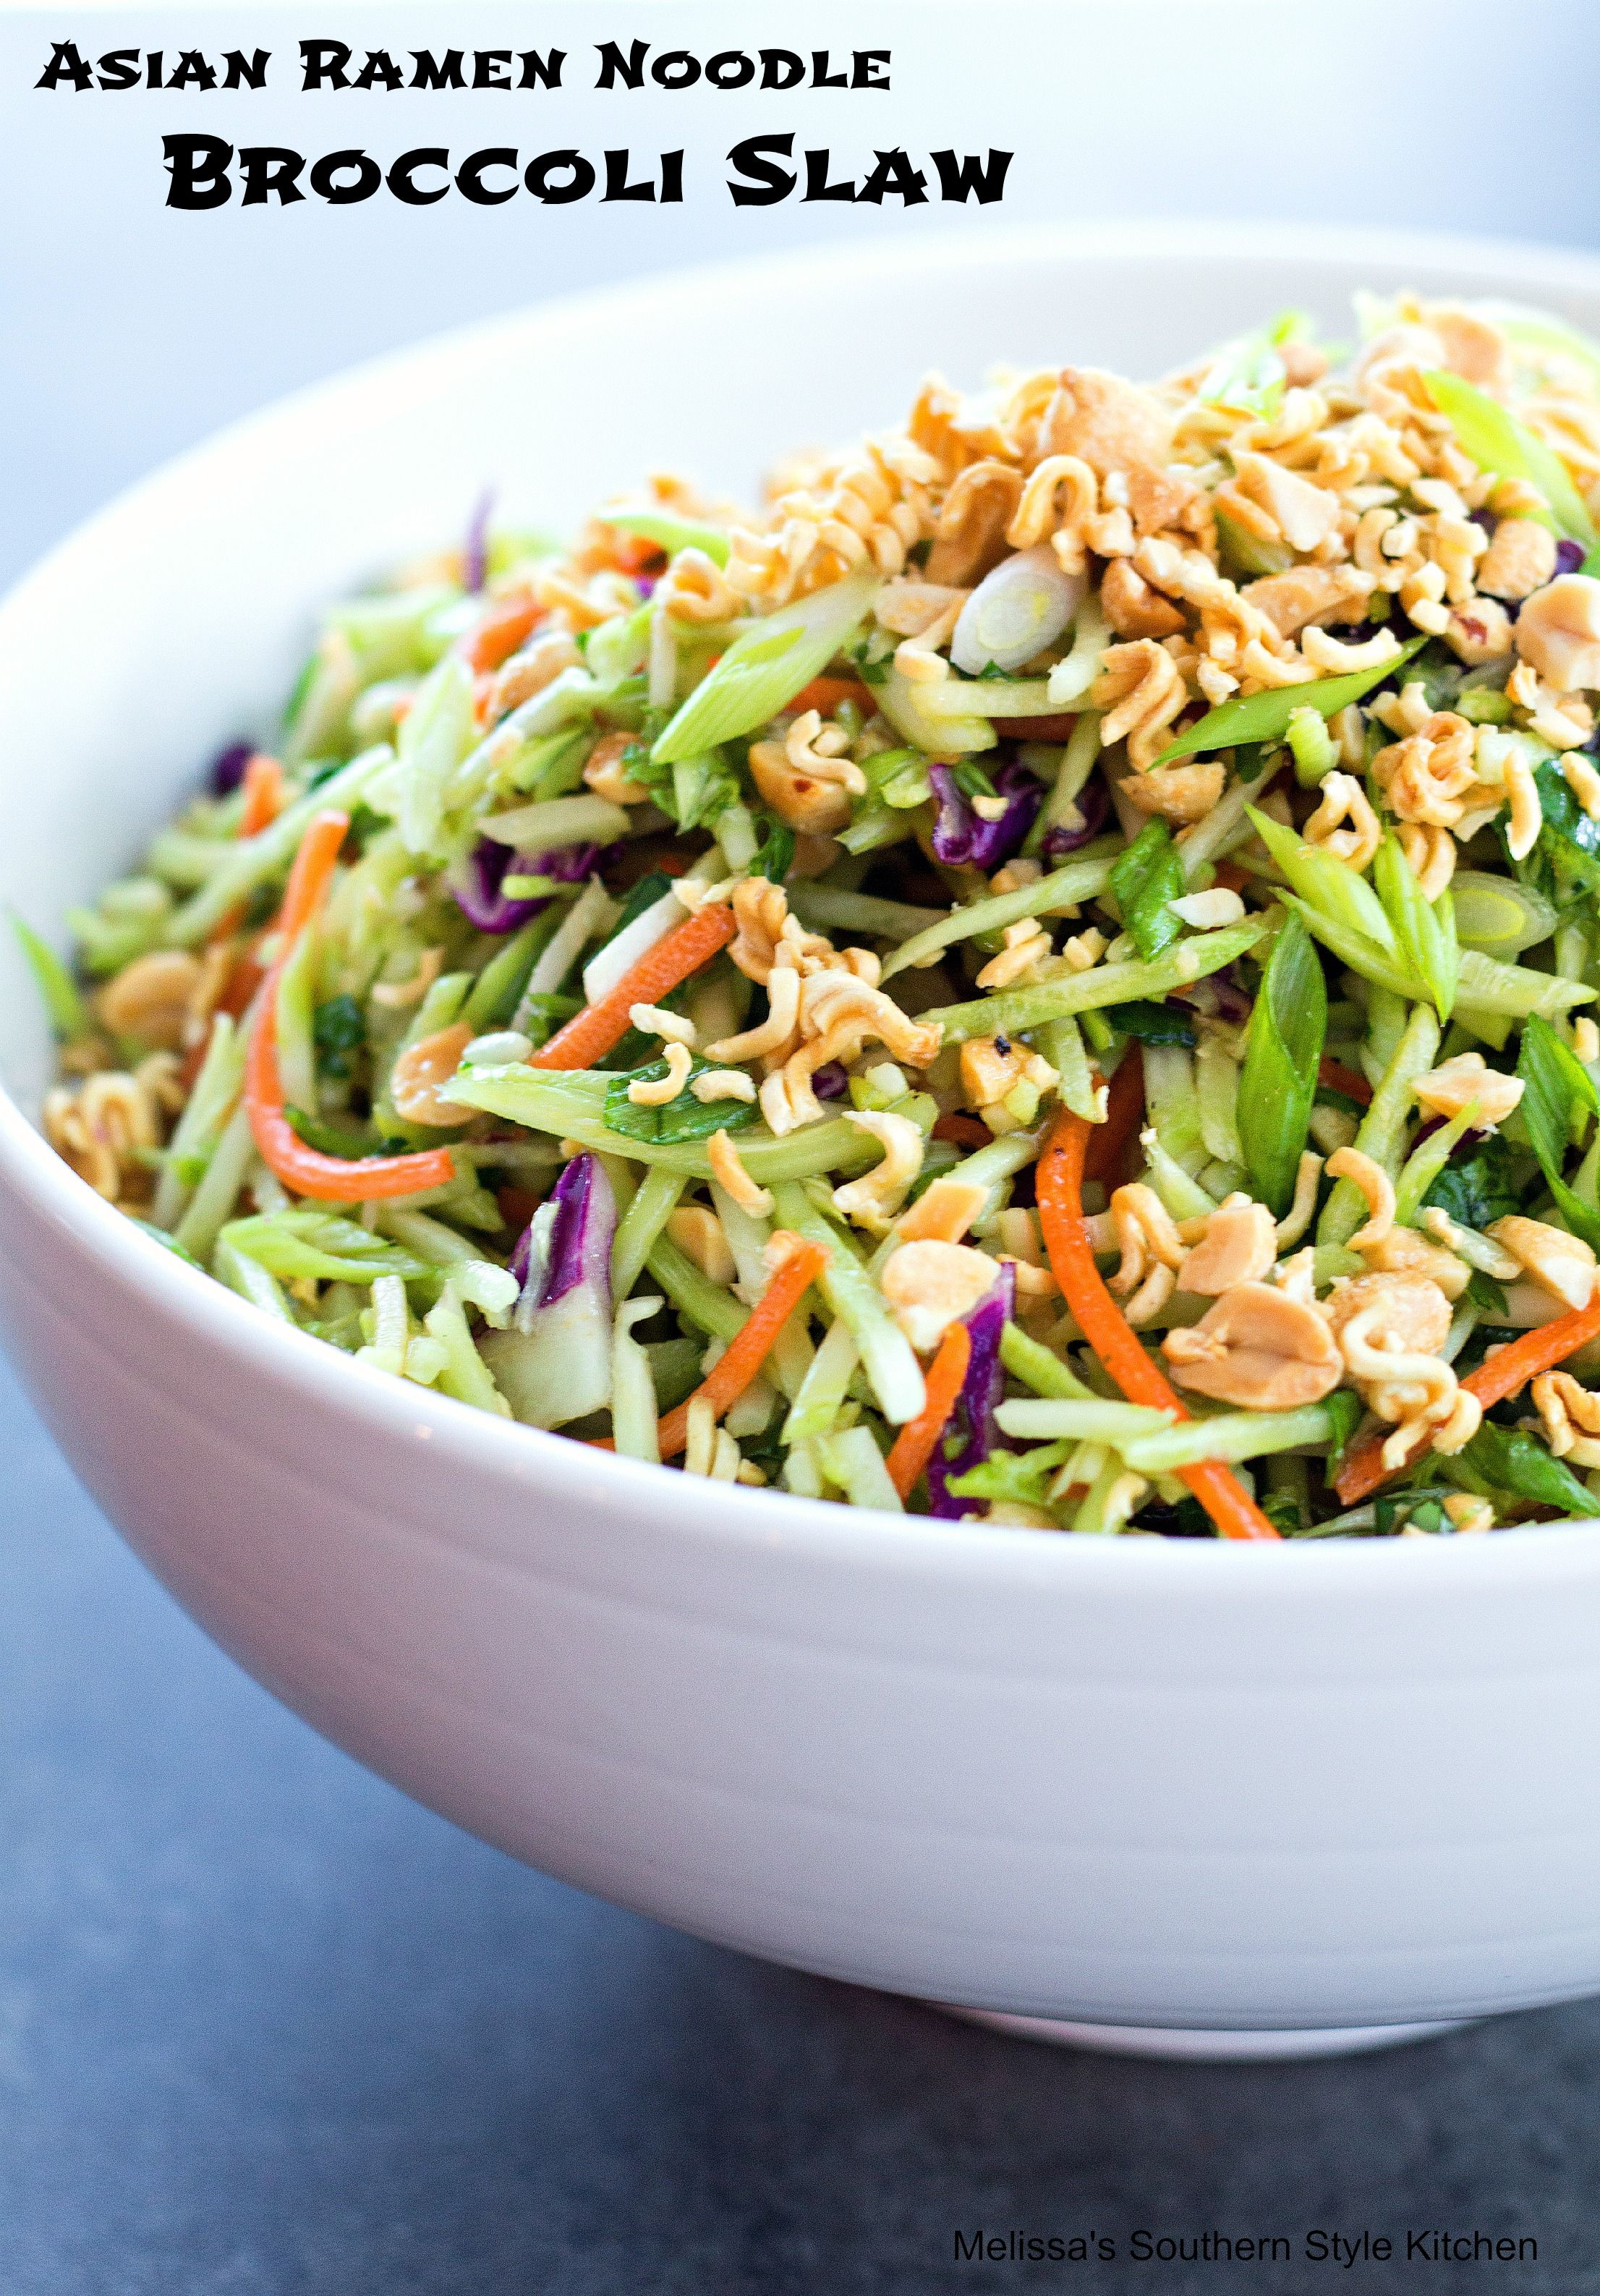 Broccoli salad receipe with asian noodles